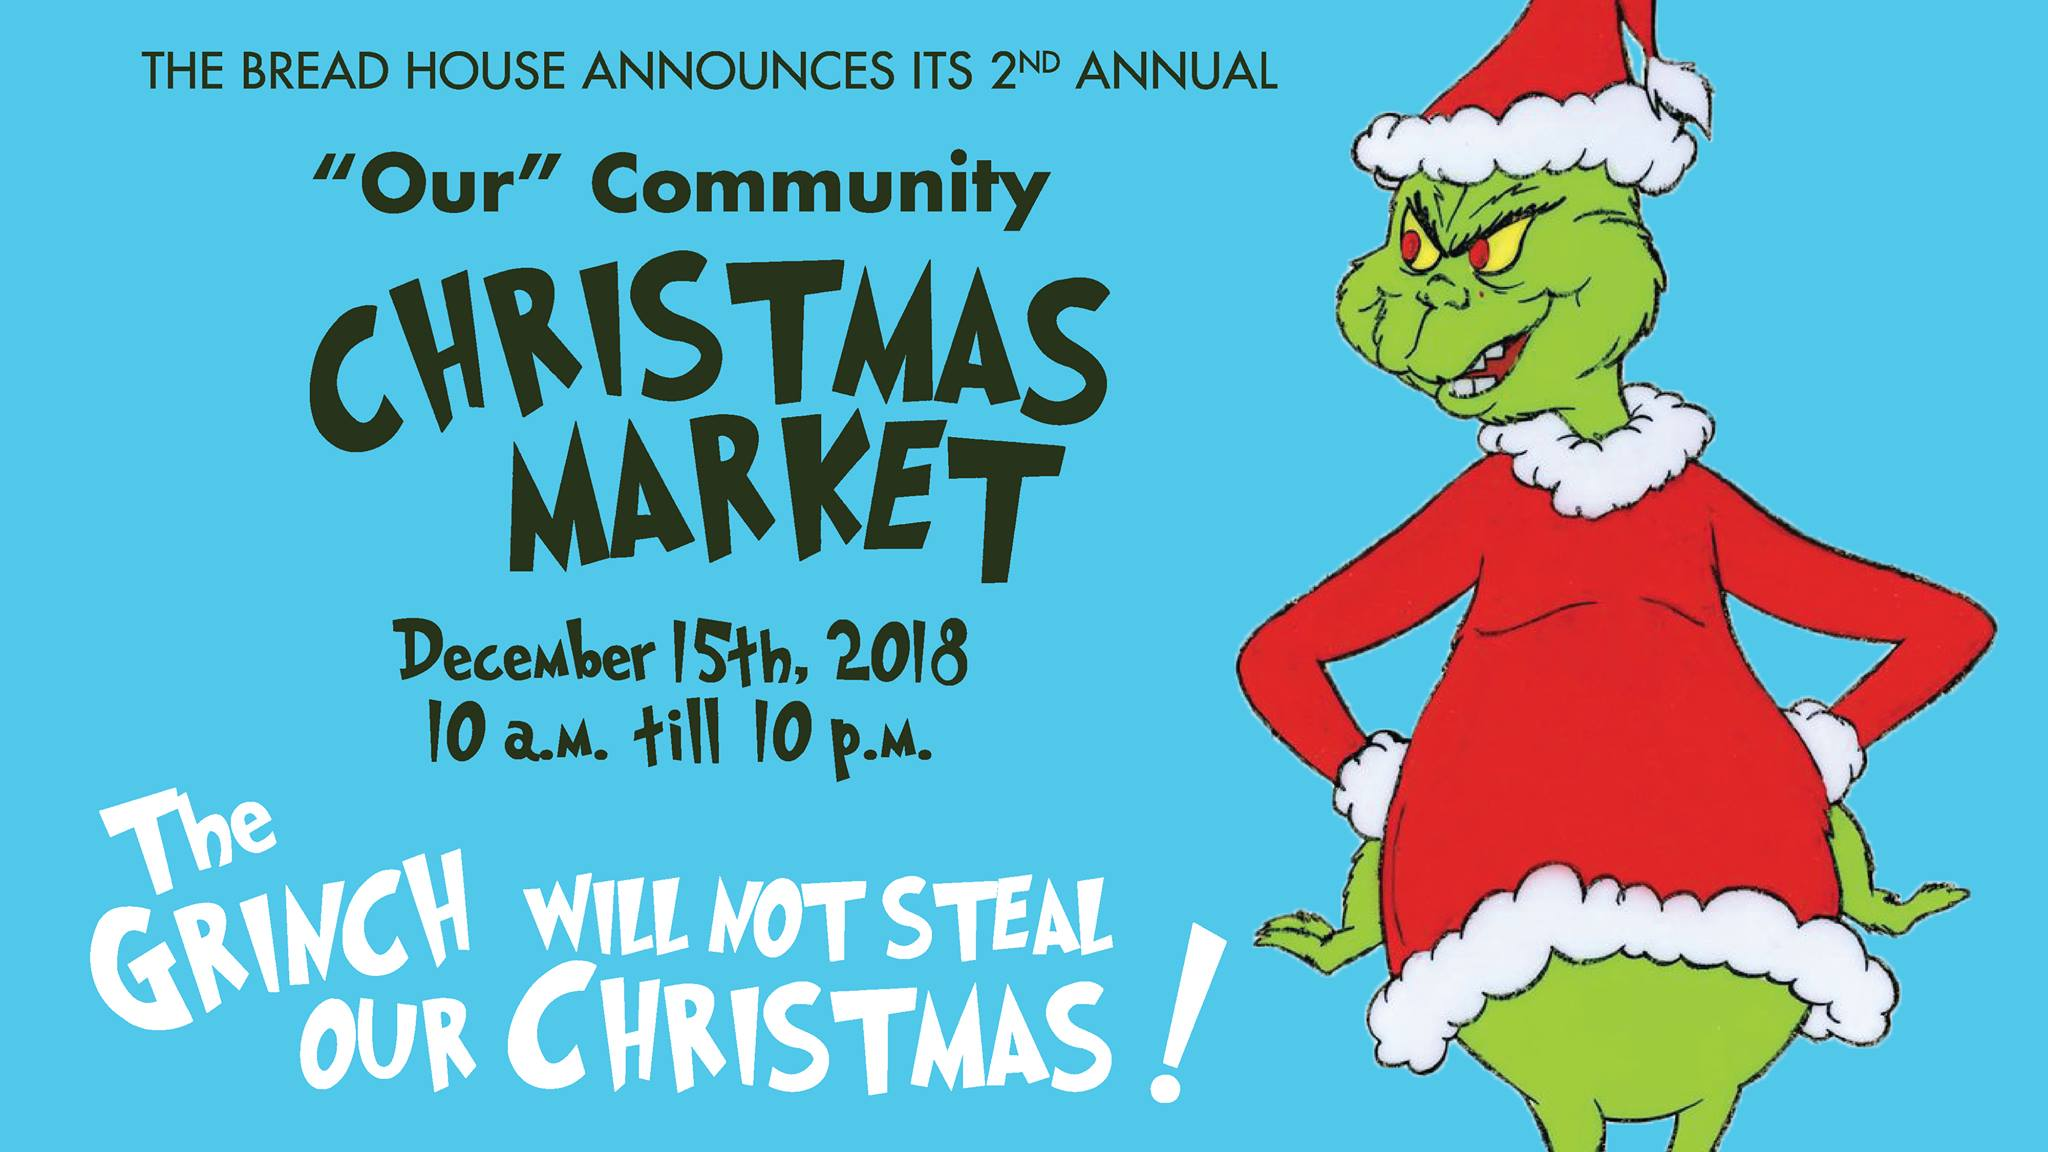 2nd Annual Community Christmas Market